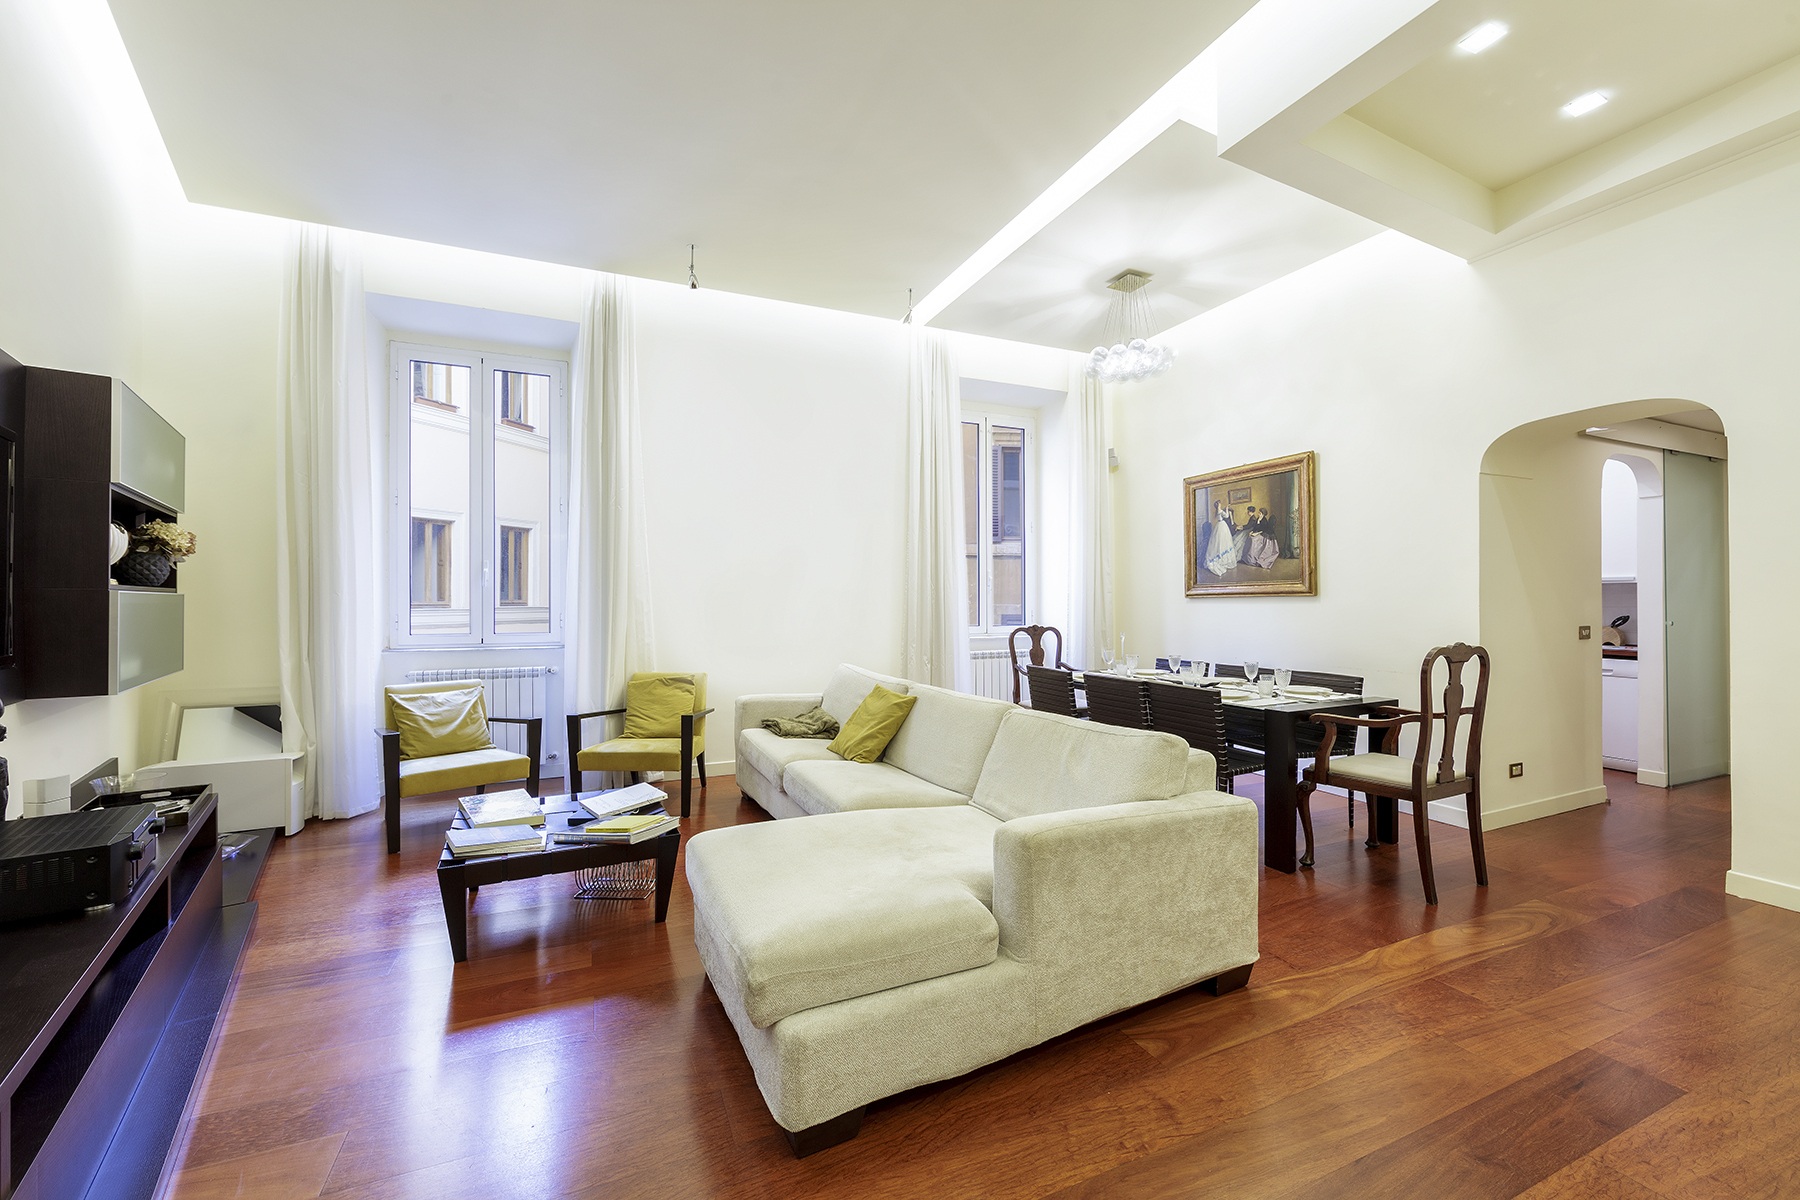 Property for Sale at Luxury and elegant apartment in the heart of Rome Rome, Rome Italy